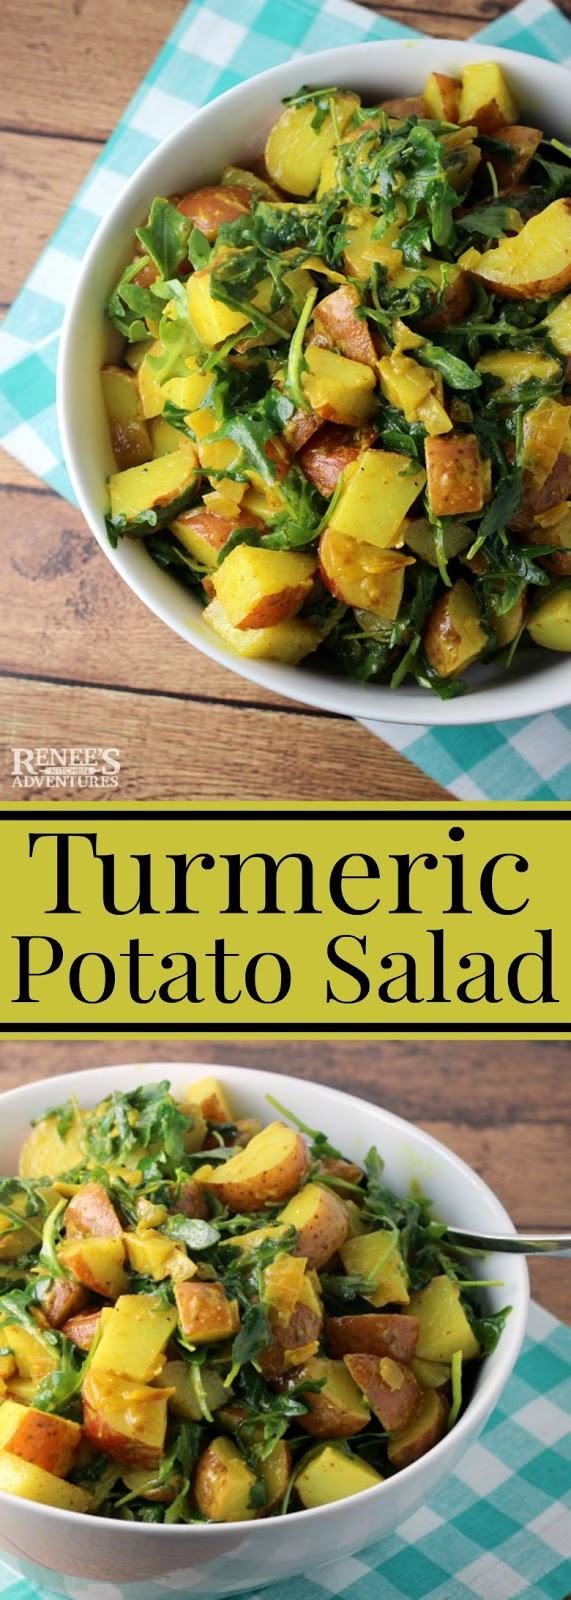 Turmeric Potato Salad | Renee's Kitchen Adventures - easy side dish recipe for potato salad made with turmeric, red potatoes, arugula with a mustard vinaigrette. Does not have mayonnaise in it. Vegan and Vegetarian